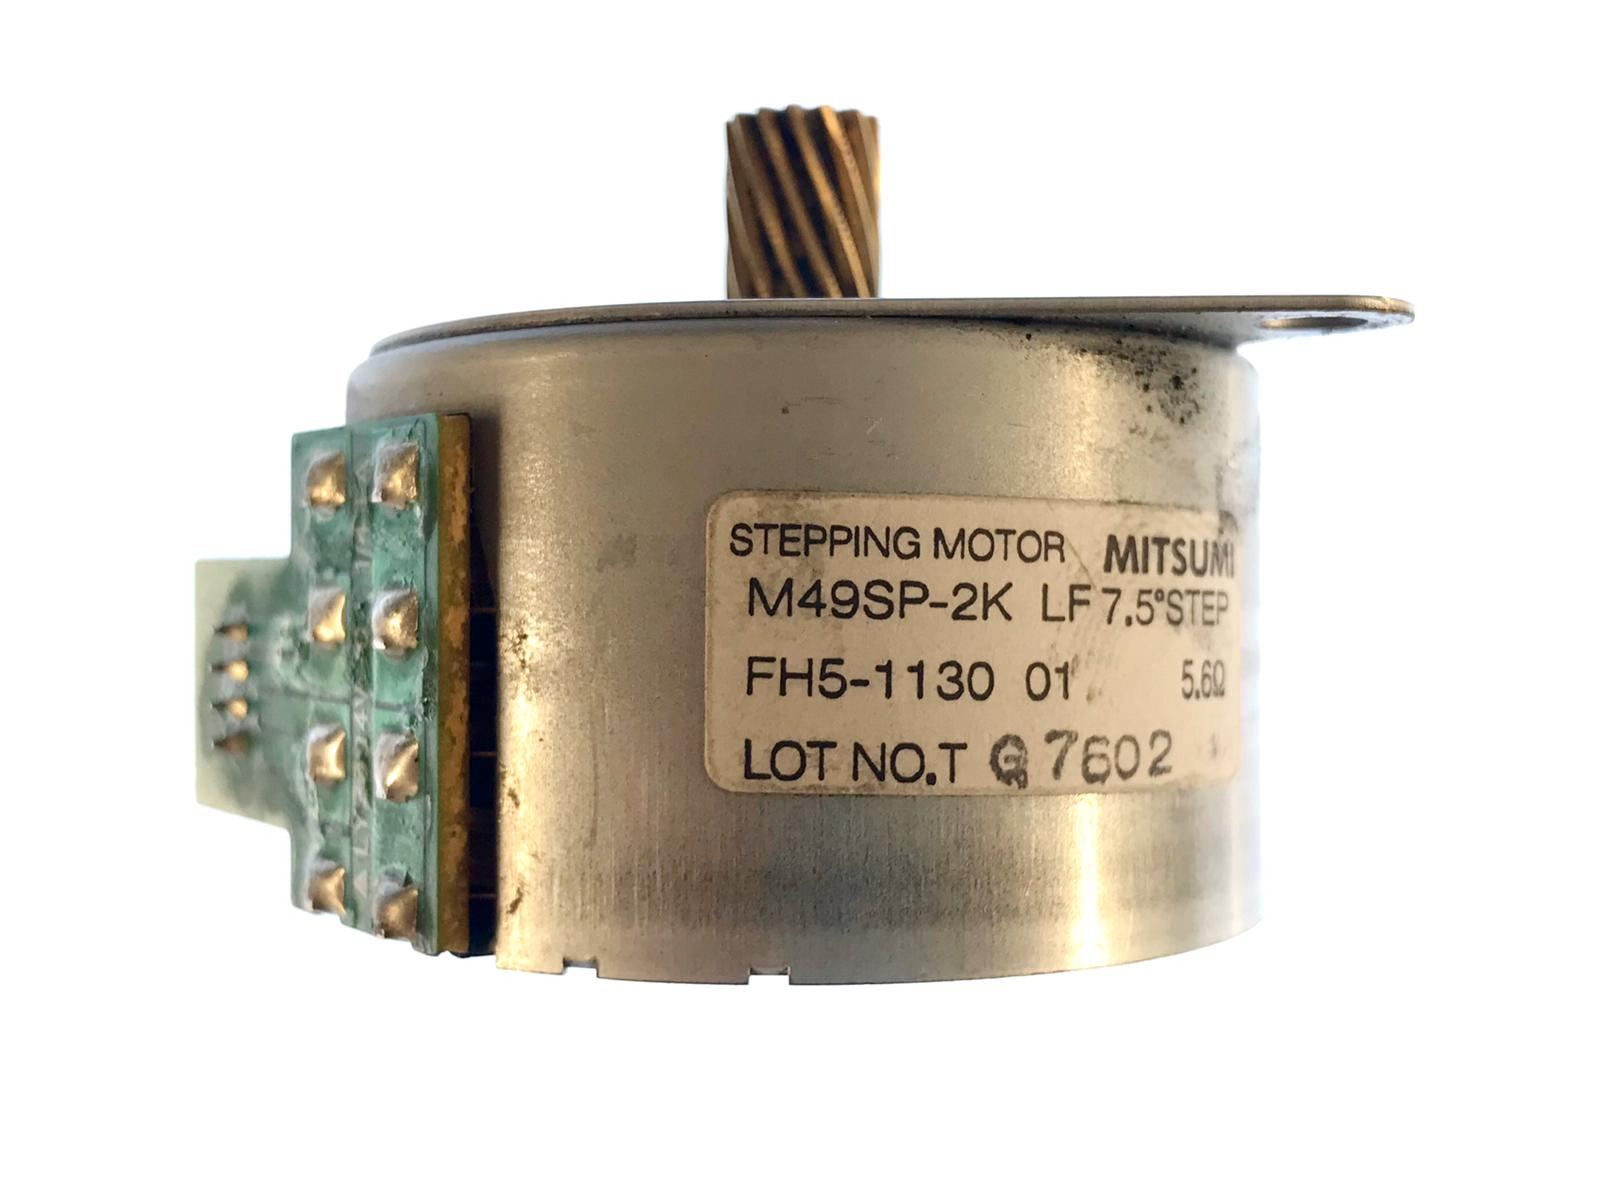 Drive Motor For HP LaserJet 3600 Printer M49SP-2K